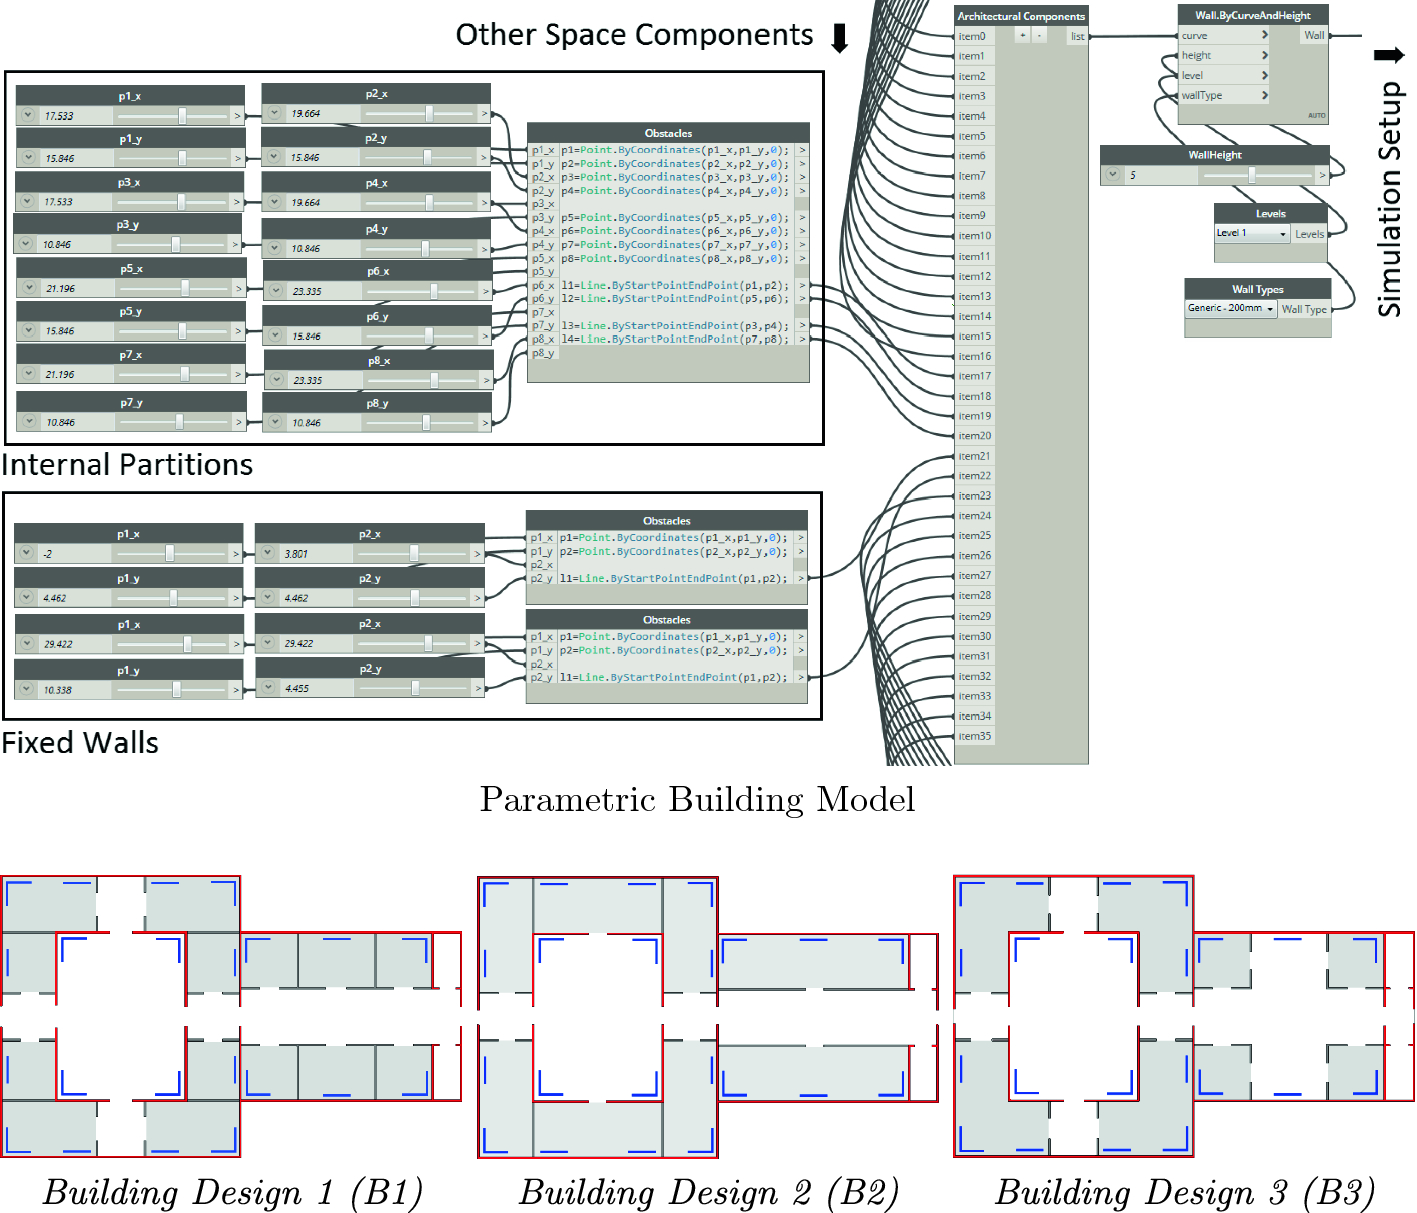 Joint Parametric Modeling of Buildings and Crowds for Human-Centric